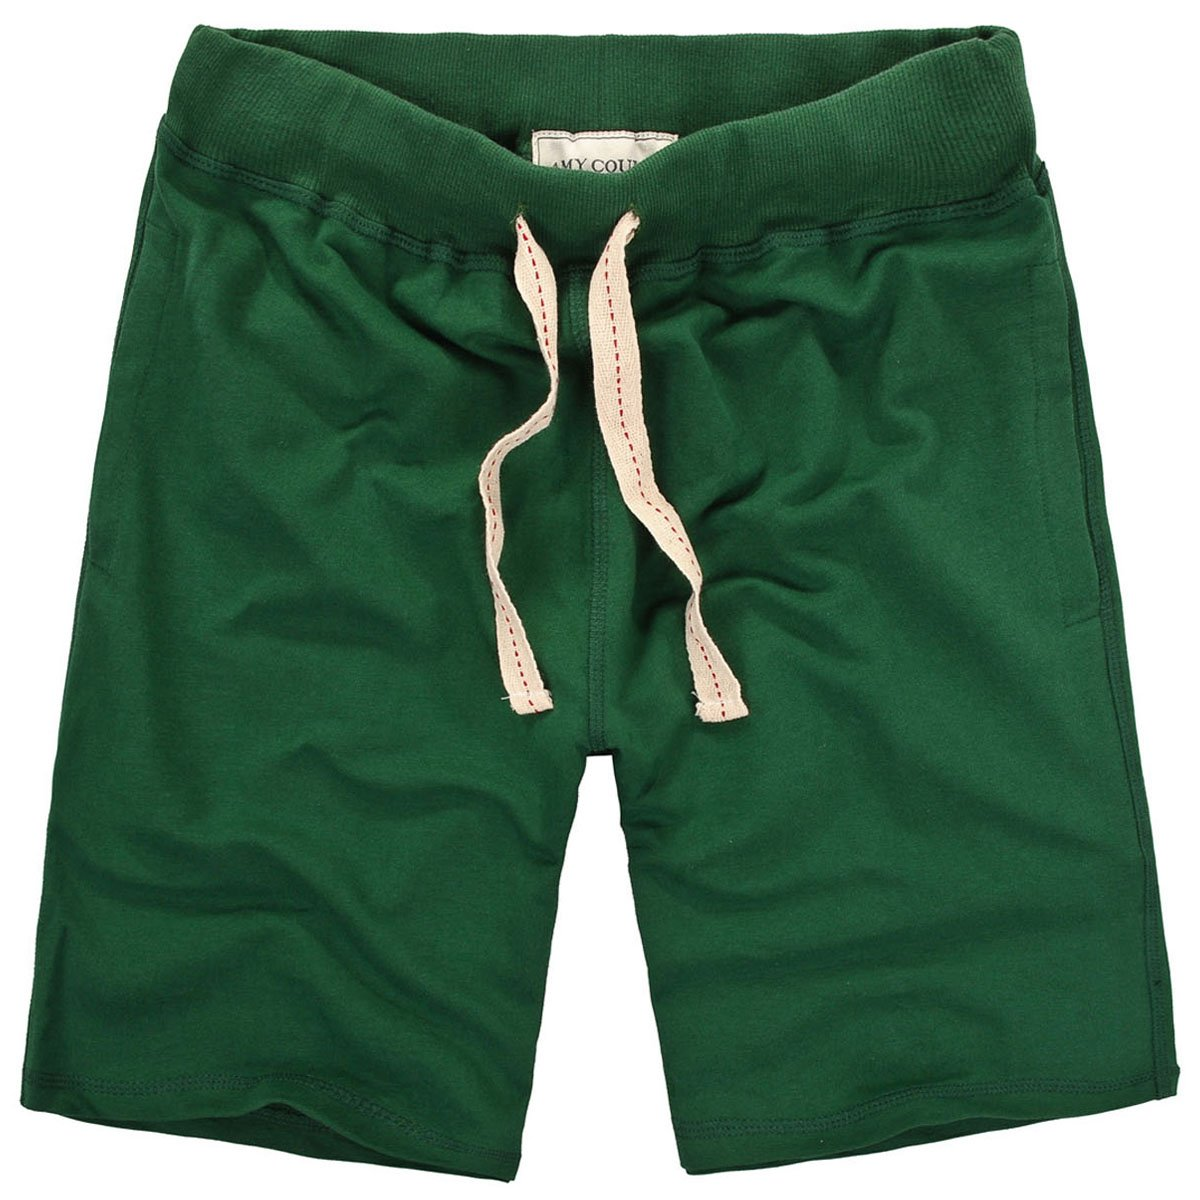 Amy Coulee Men's Causal Cotton Elastic Waistband Shorts With Pockets (XL, green)